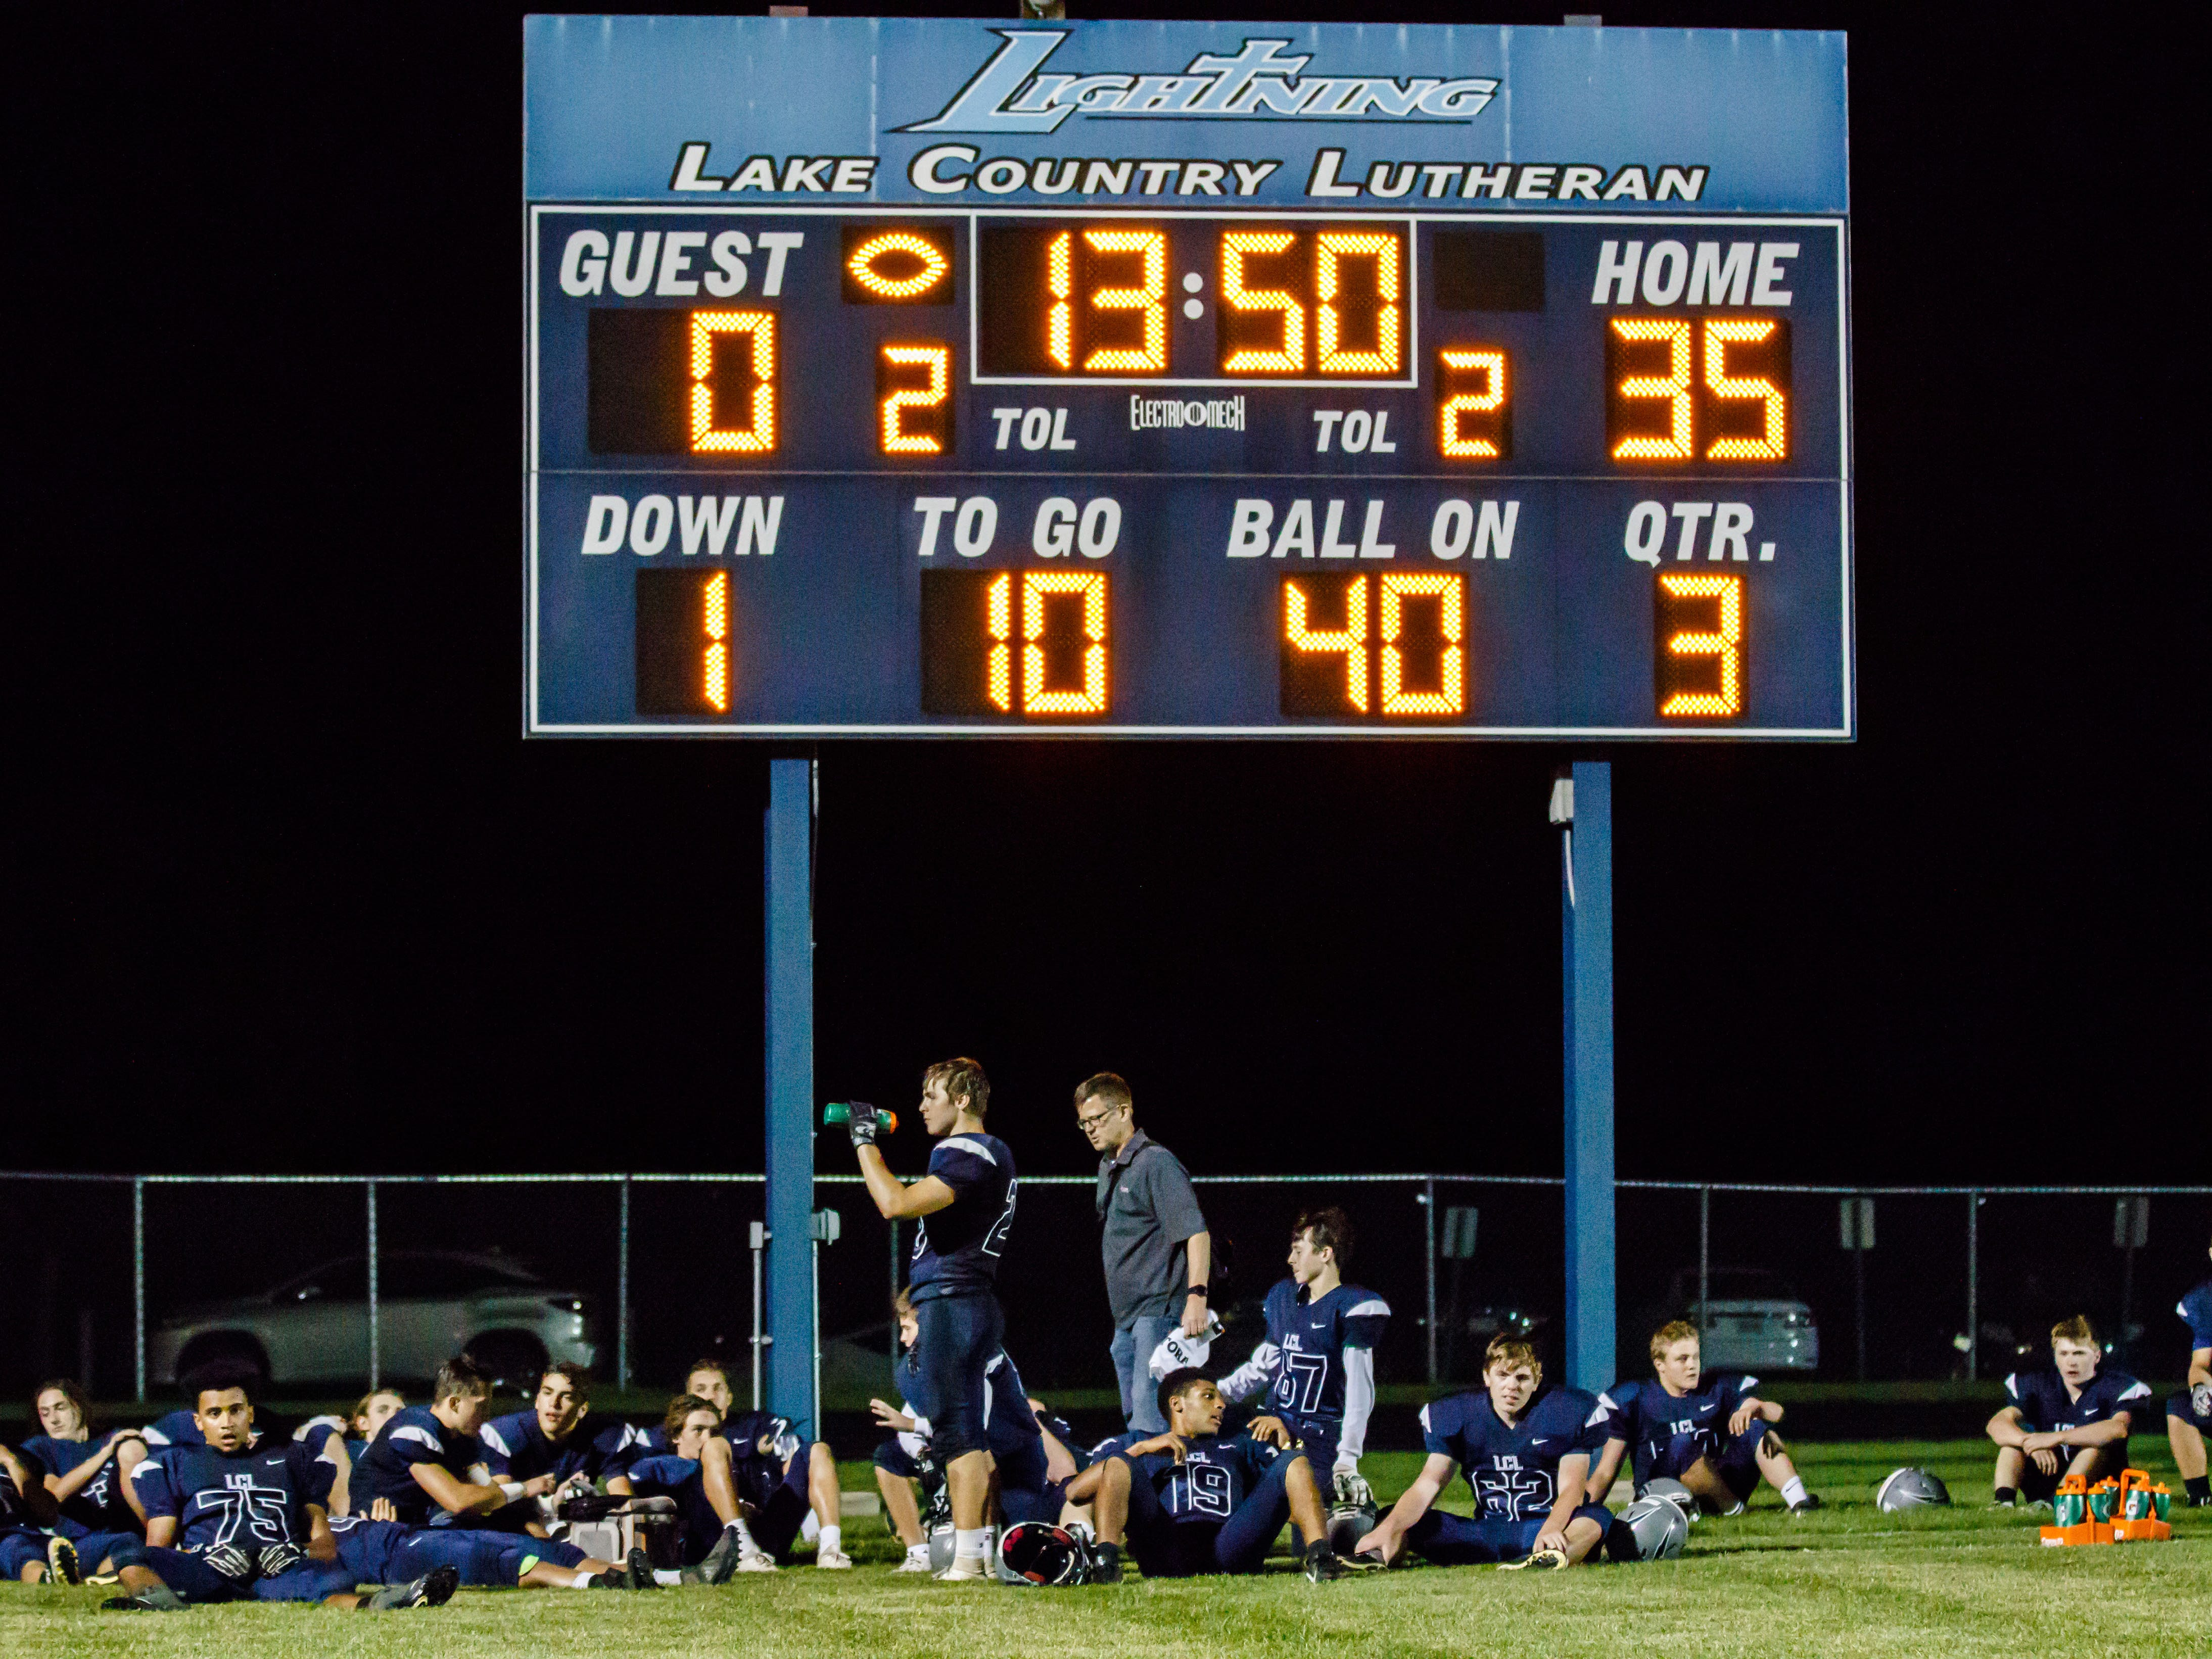 Lake Country Lutheran players rest under the scoreboard during halftime of the game at home against University School of Milwaukee on Thursday, Sept. 13, 2018.